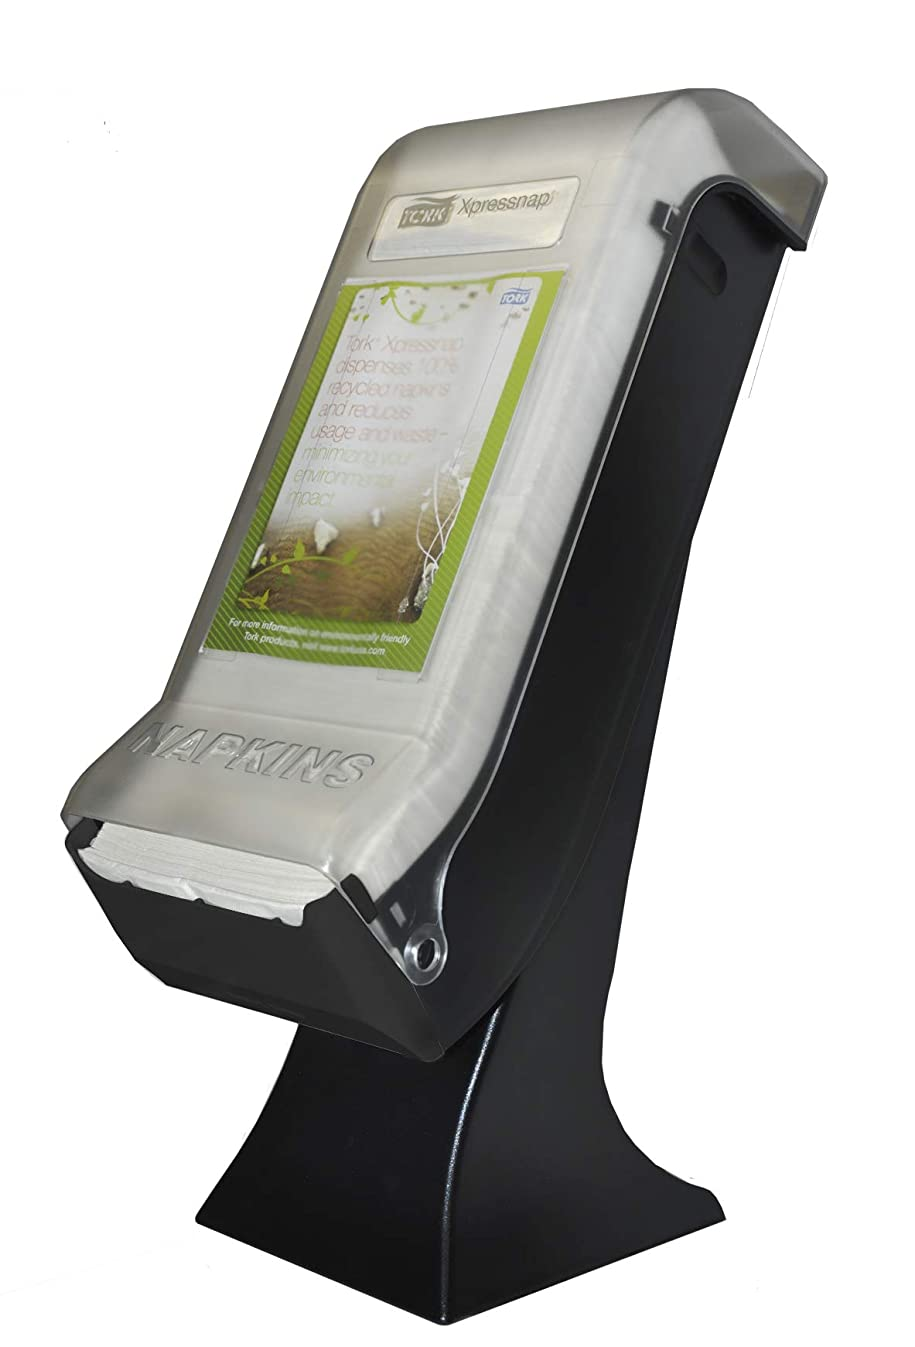 Tork 5555100 Xpressnap Stand Napkin Dispenser with Drive Thru Face Plate, 22.5